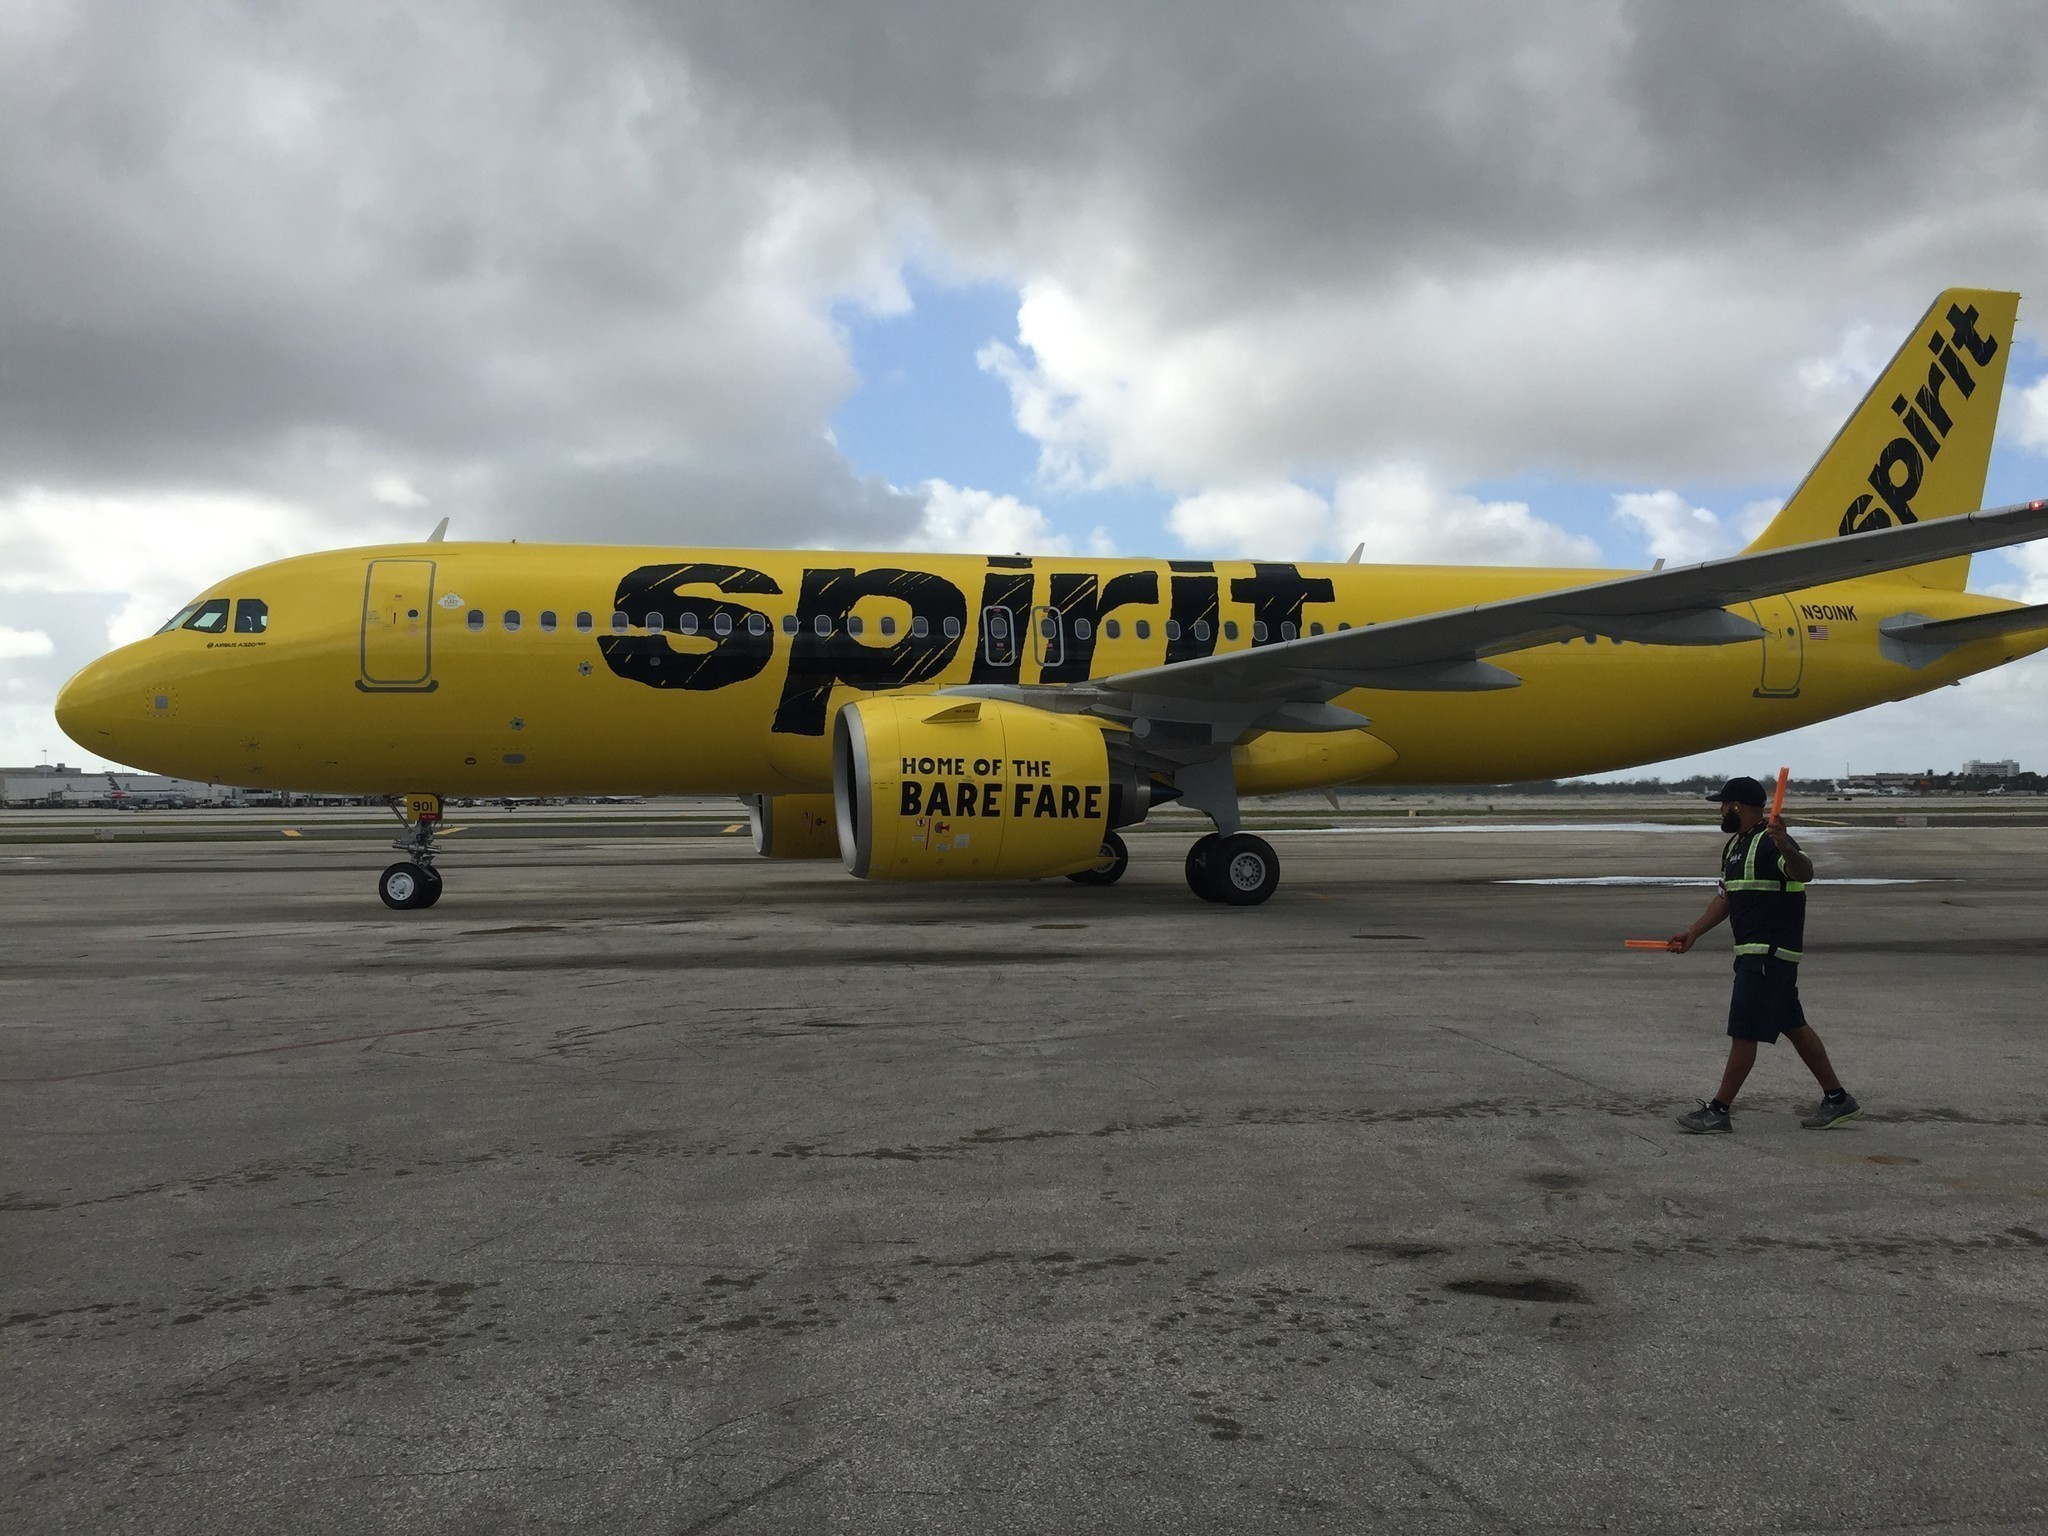 Spirit airlines 39 site crashes customers can 39 t book for Book a flight with spirit airlines